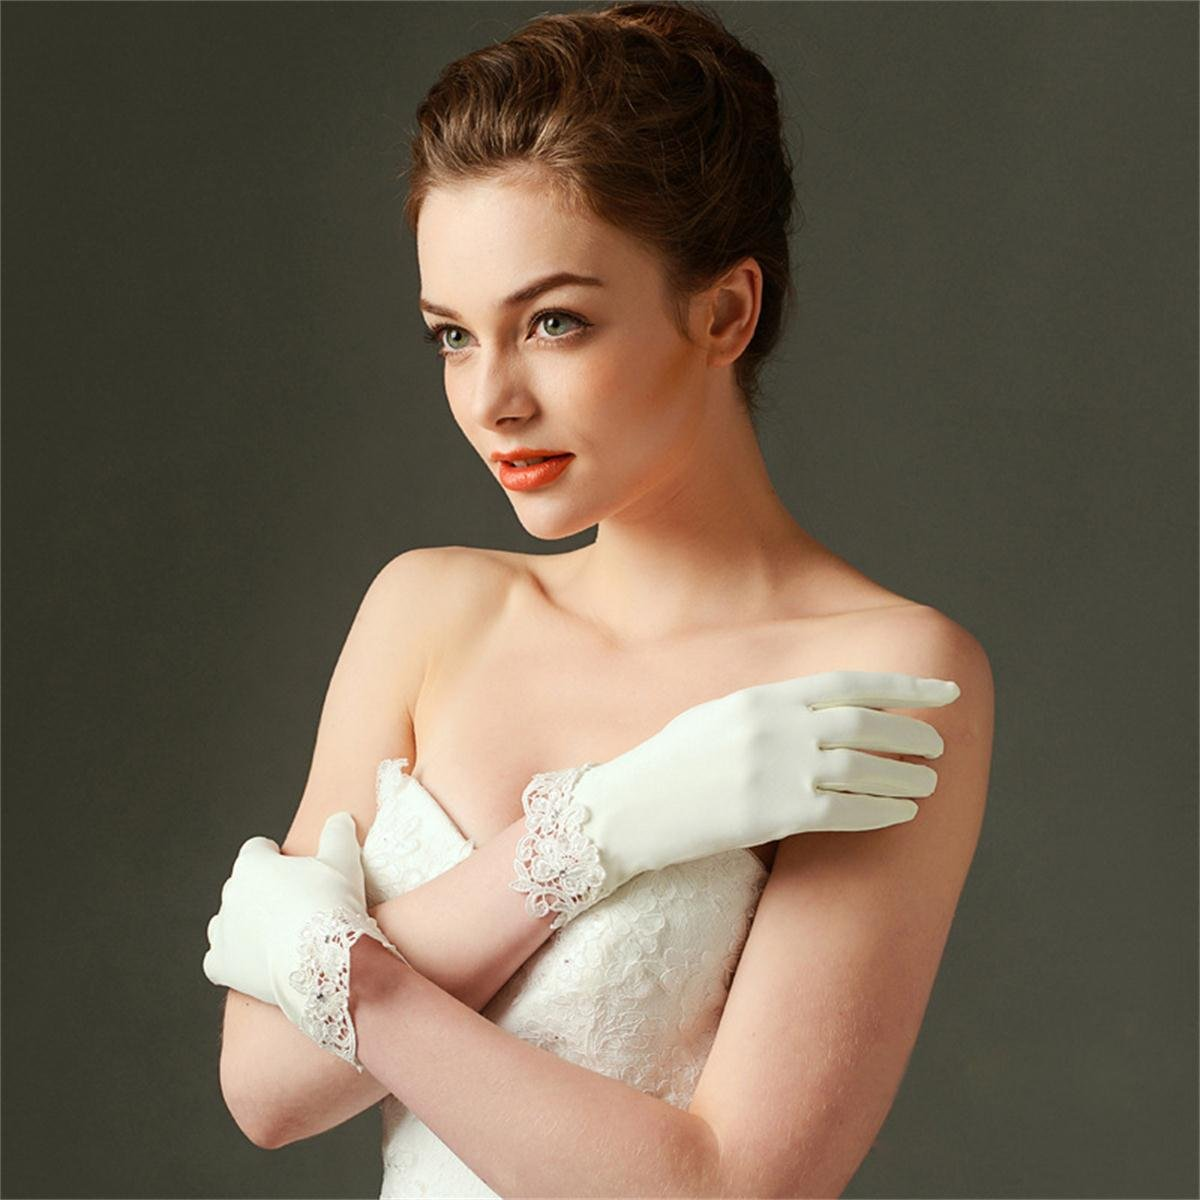 MissDaisy Dull Matte Satin Bride Gloves Ivory Lace Edge Party Short Dress Gloves by MissDaisy (Image #3)